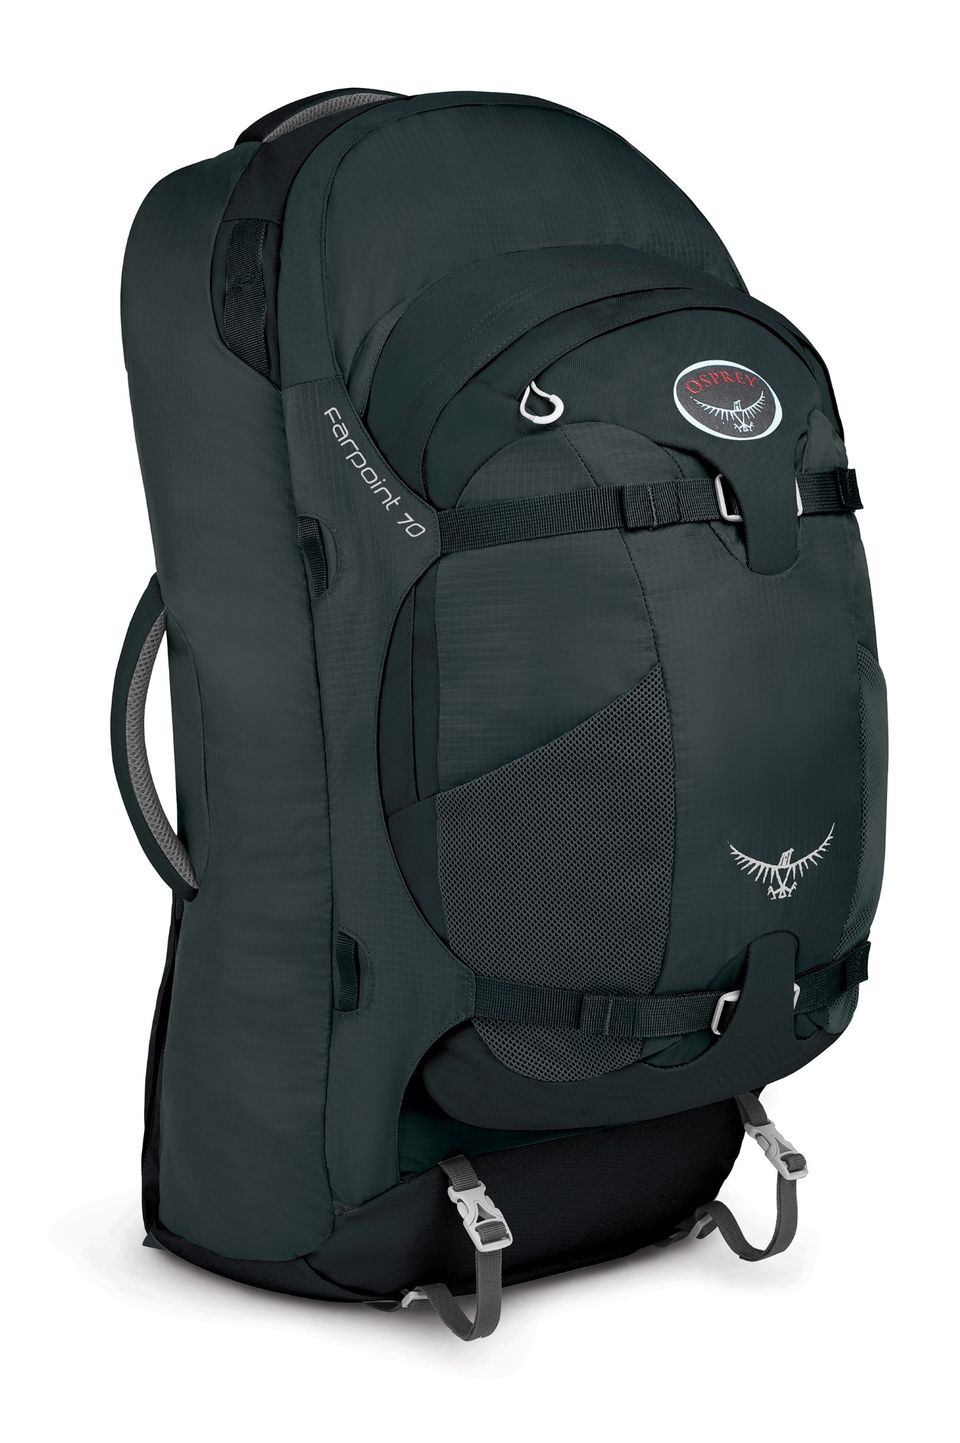 d77fc11b48bb Why the Osprey Farpoint 70 Backpack